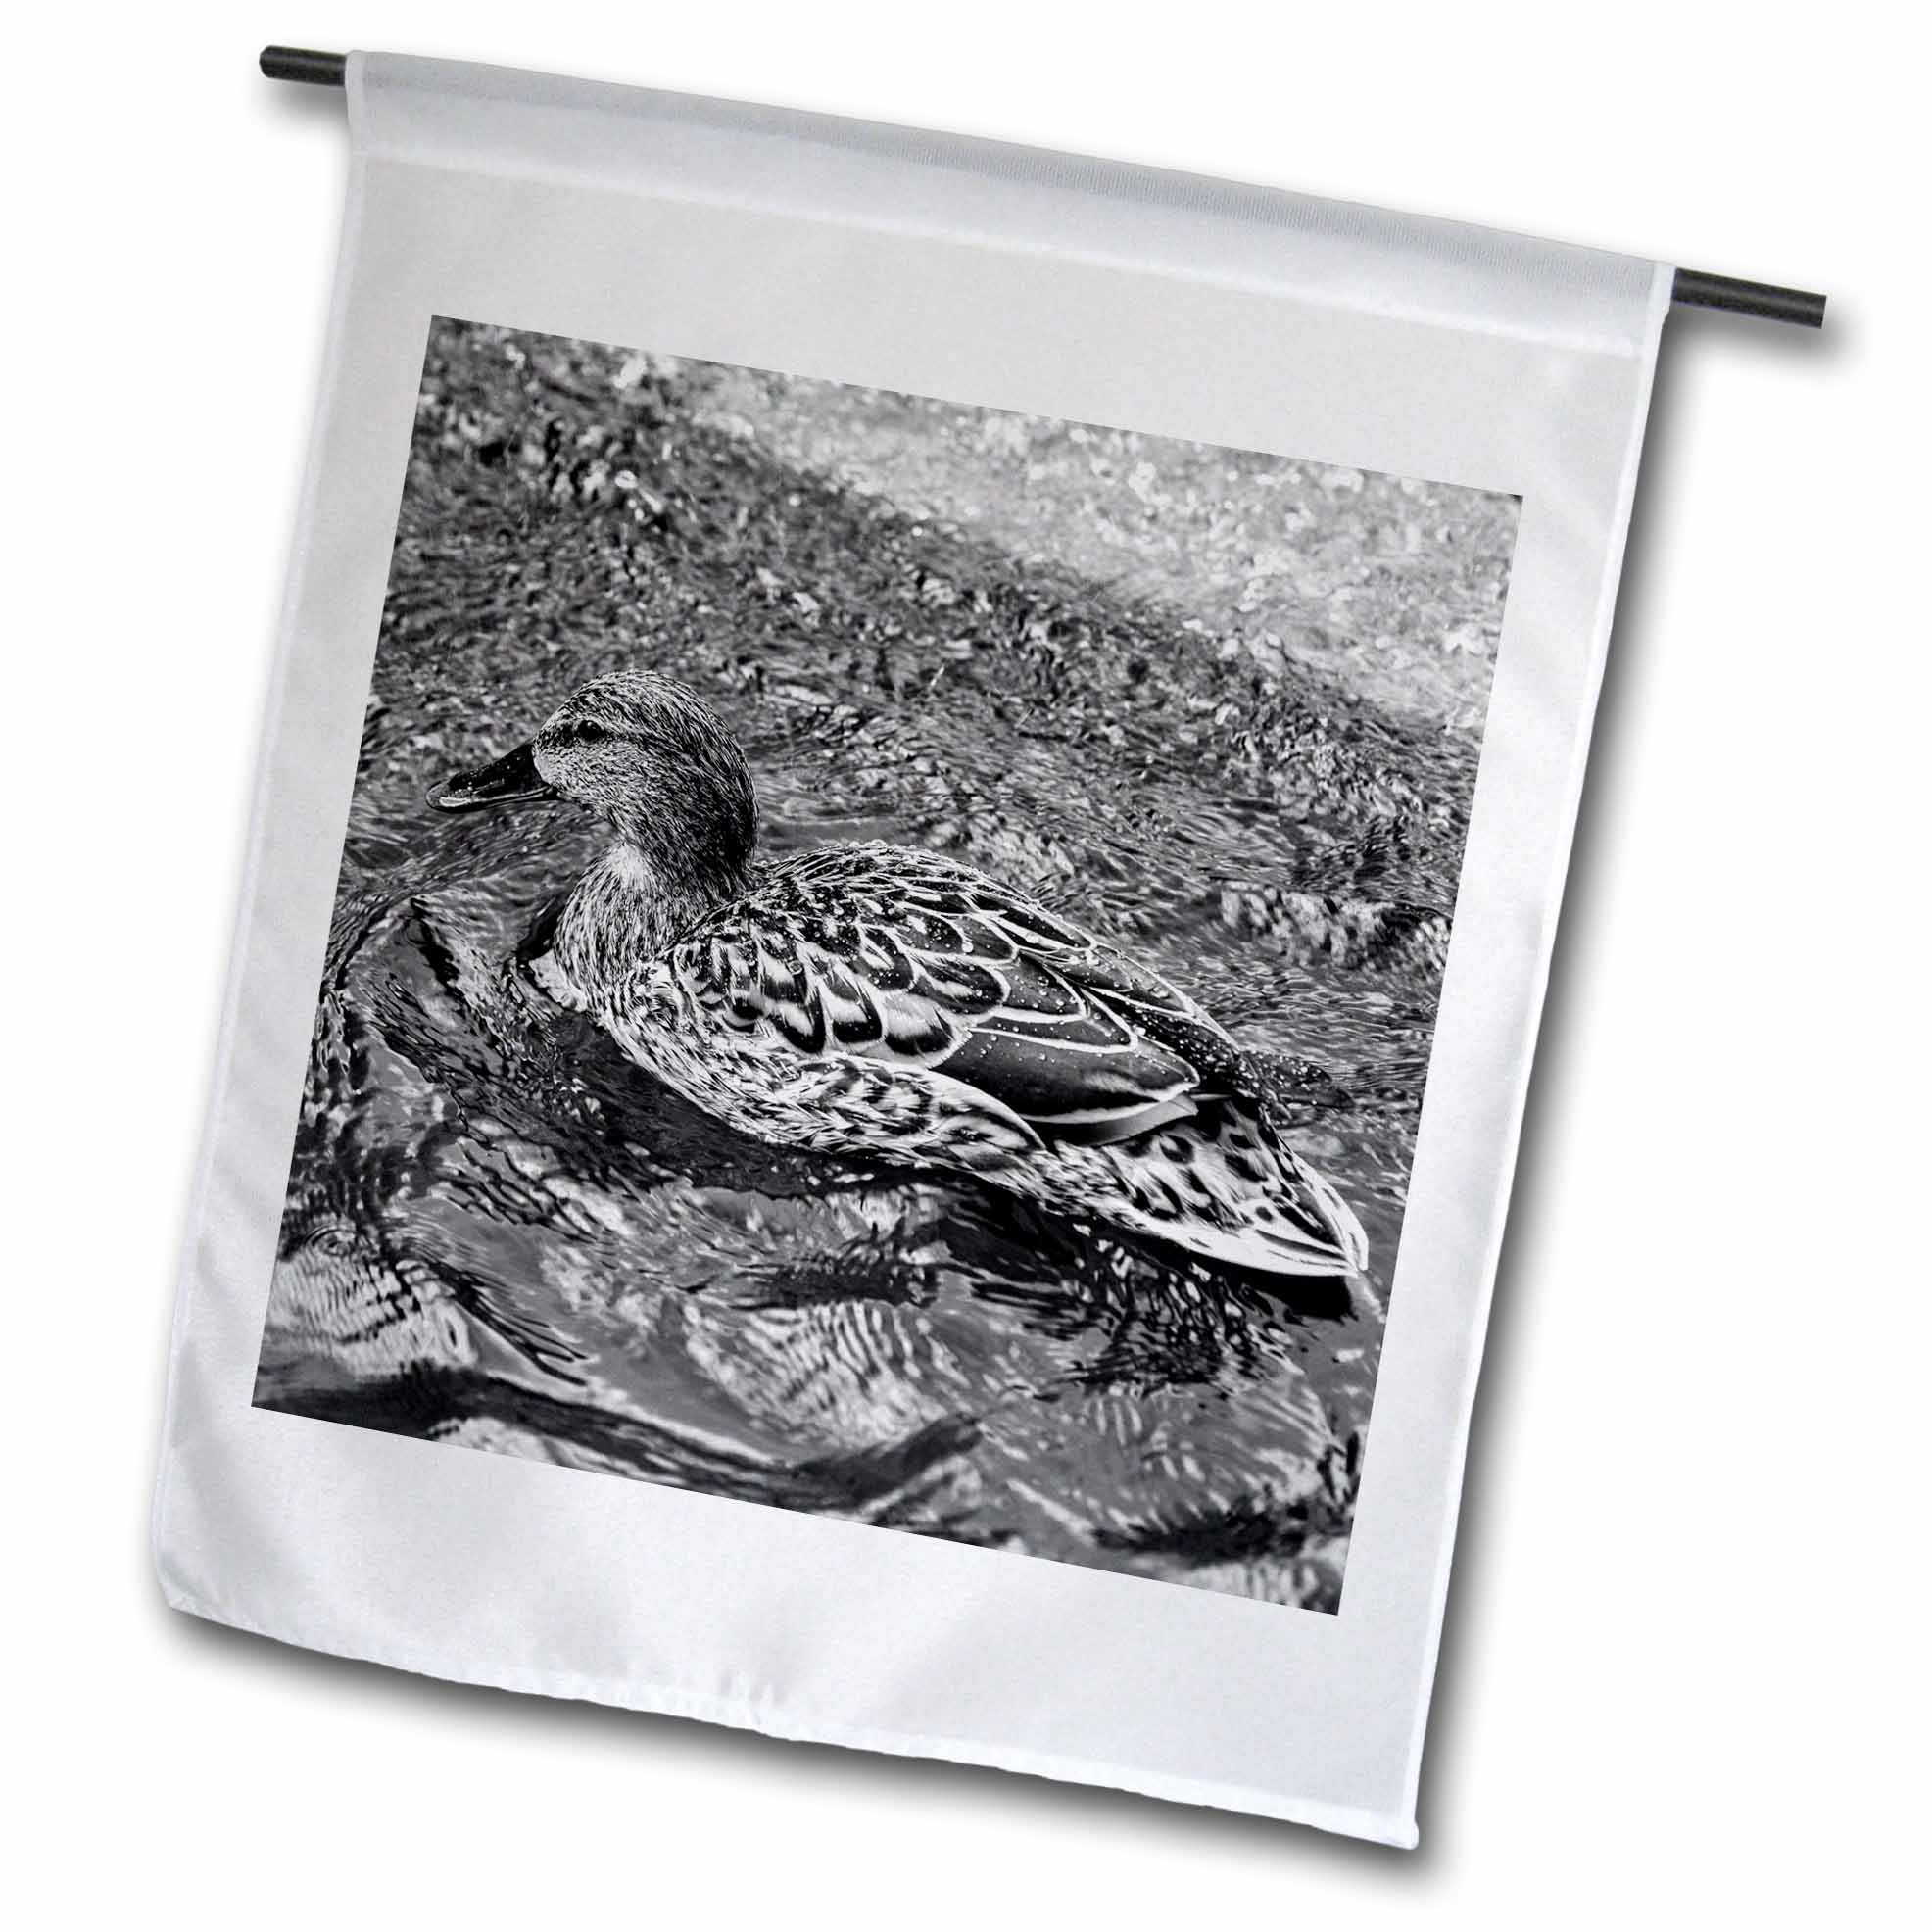 3dRose Alexis Photography - Birds - Mallard duck in a bubbling water of a city fountain, black and white - 18 x 27 inch Garden Flag (fl_281187_2)